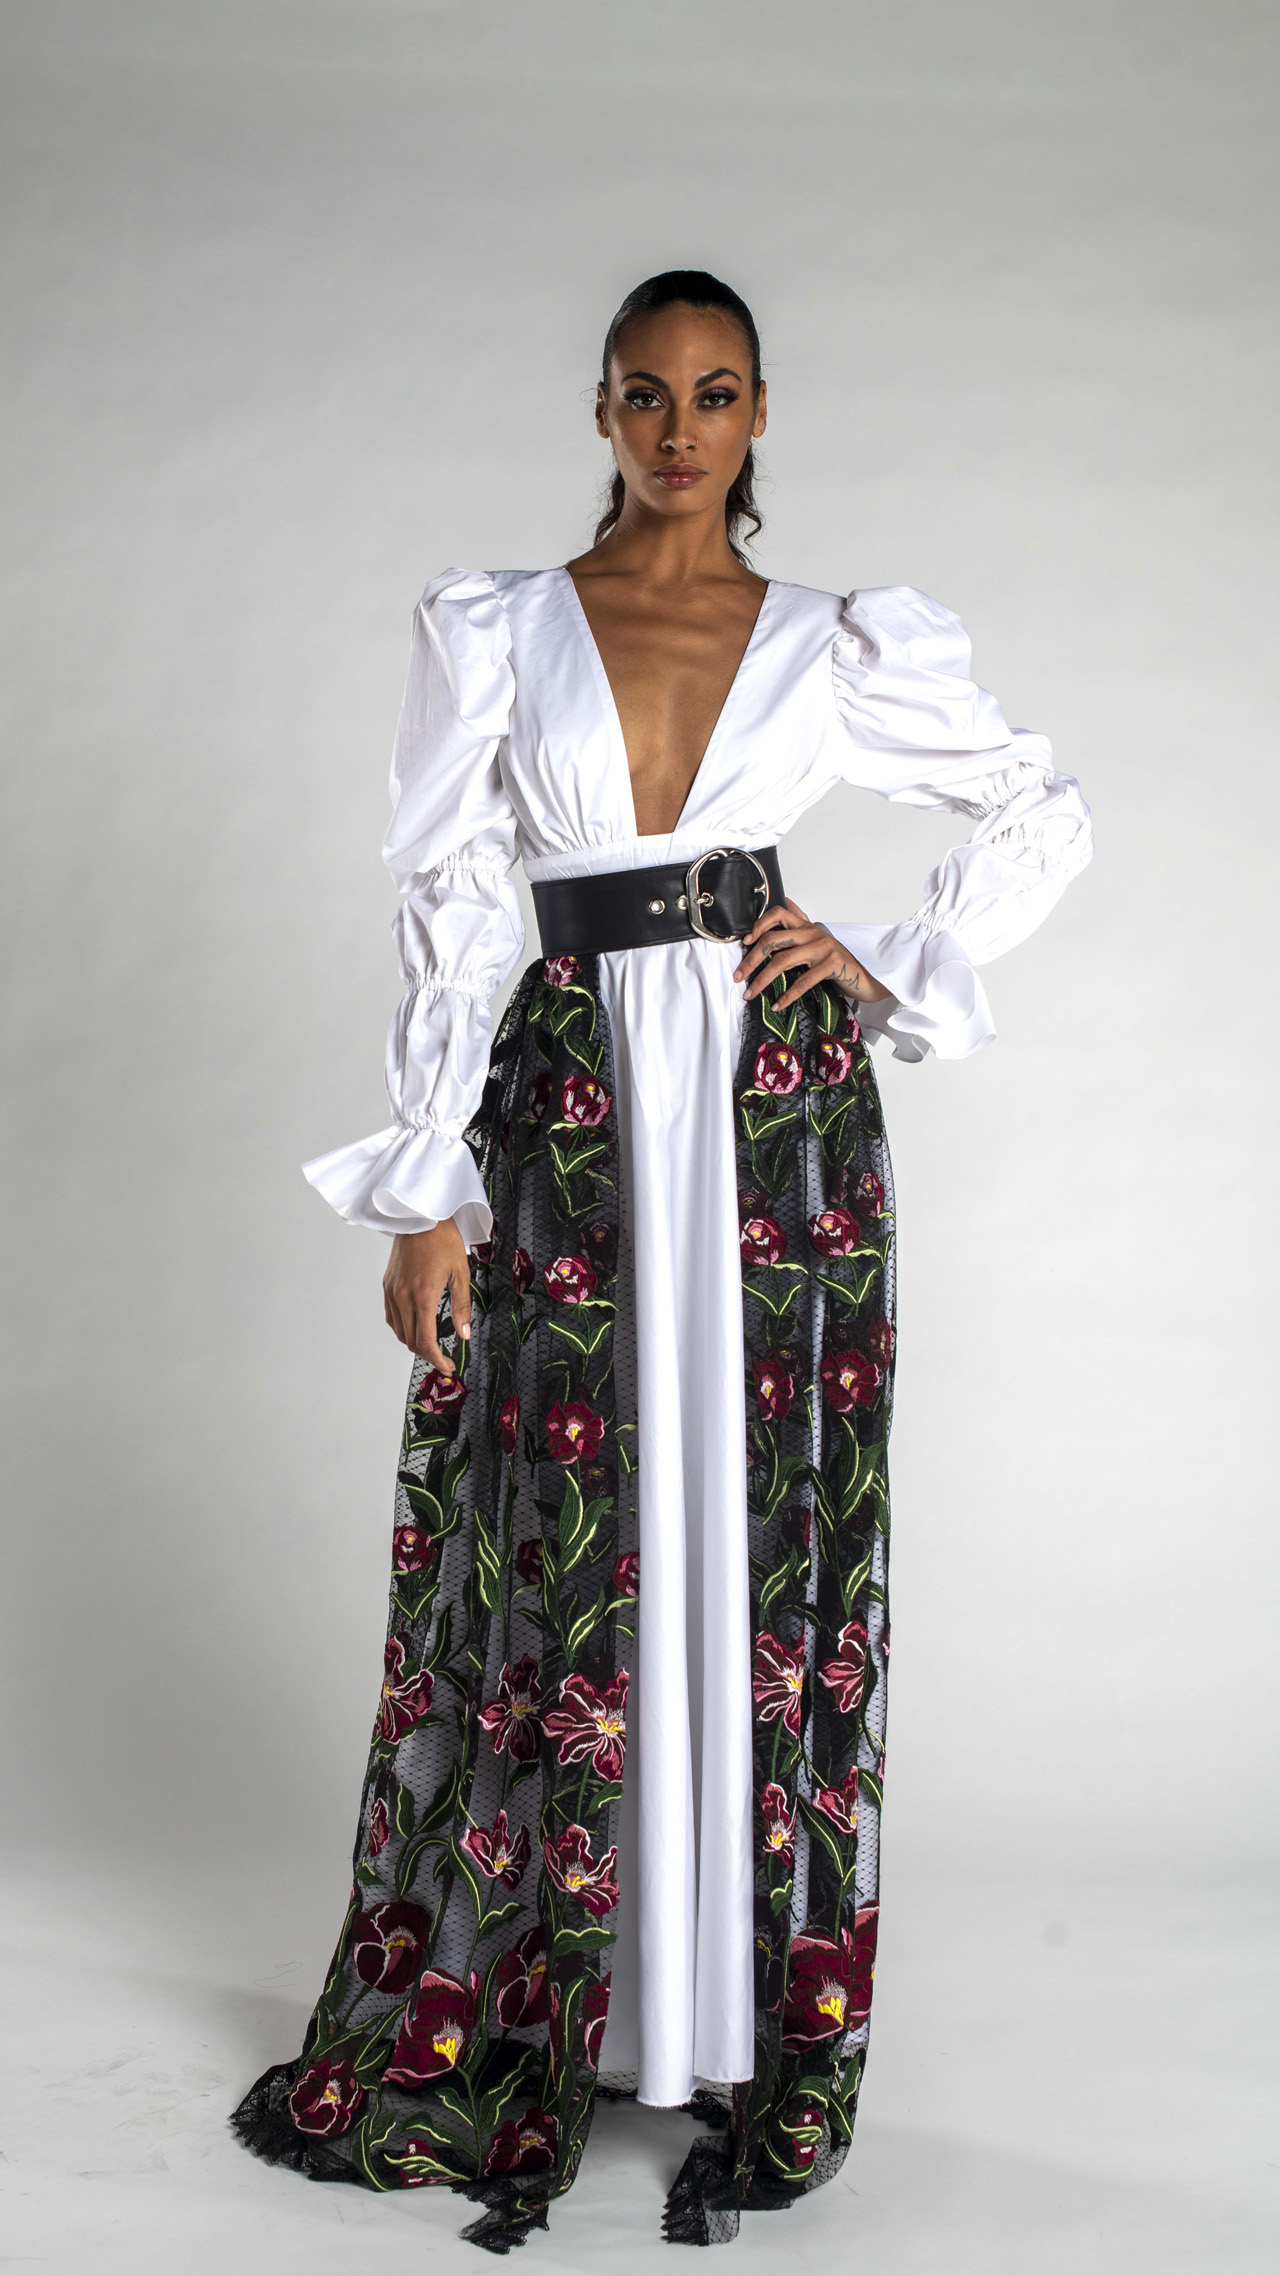 Debut Student Nadia Tymkowicz S Collection Was Inspired By Her Mexican Heritage Latest News Fidm Edu